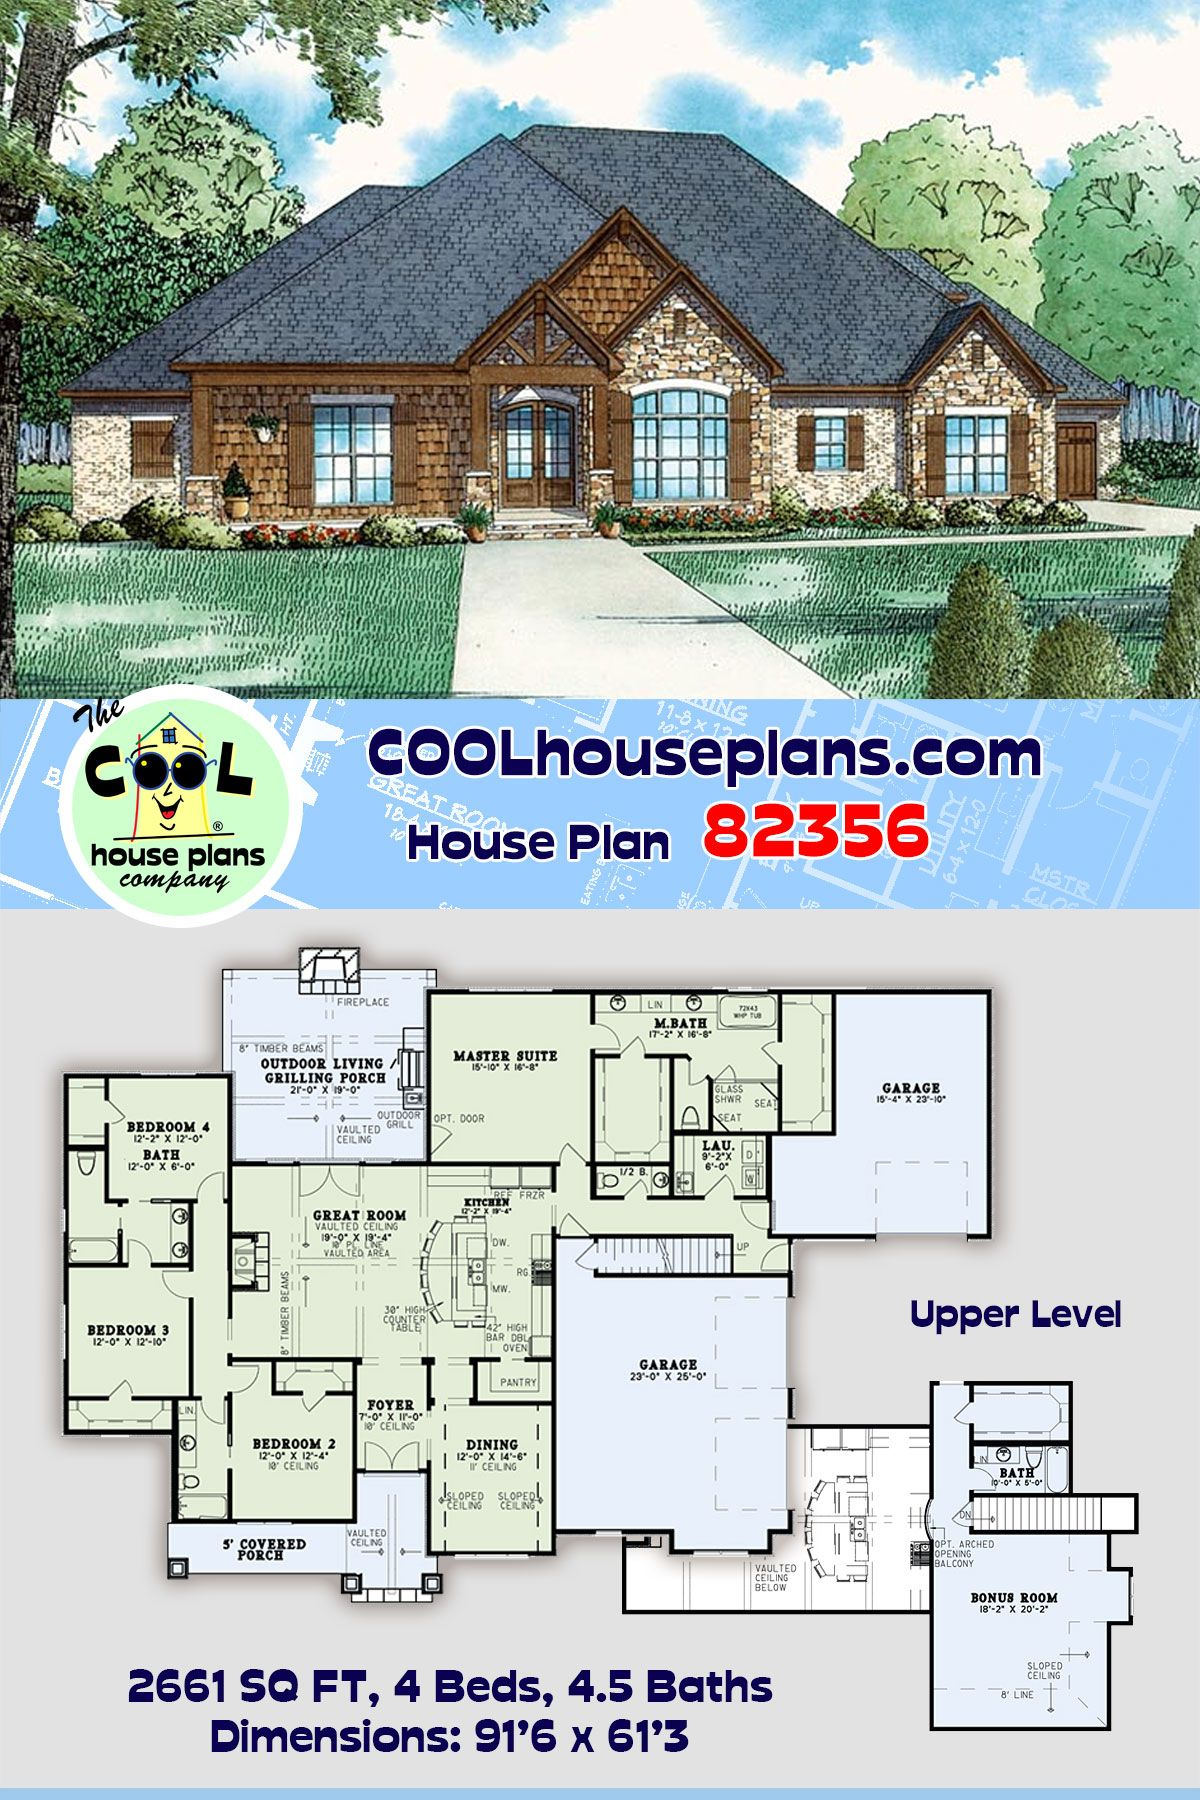 European Style House Plan 82356 With 4 Bed 5 Bath 3 Car Garage In 2020 House Plans European Style Homes French House Plans